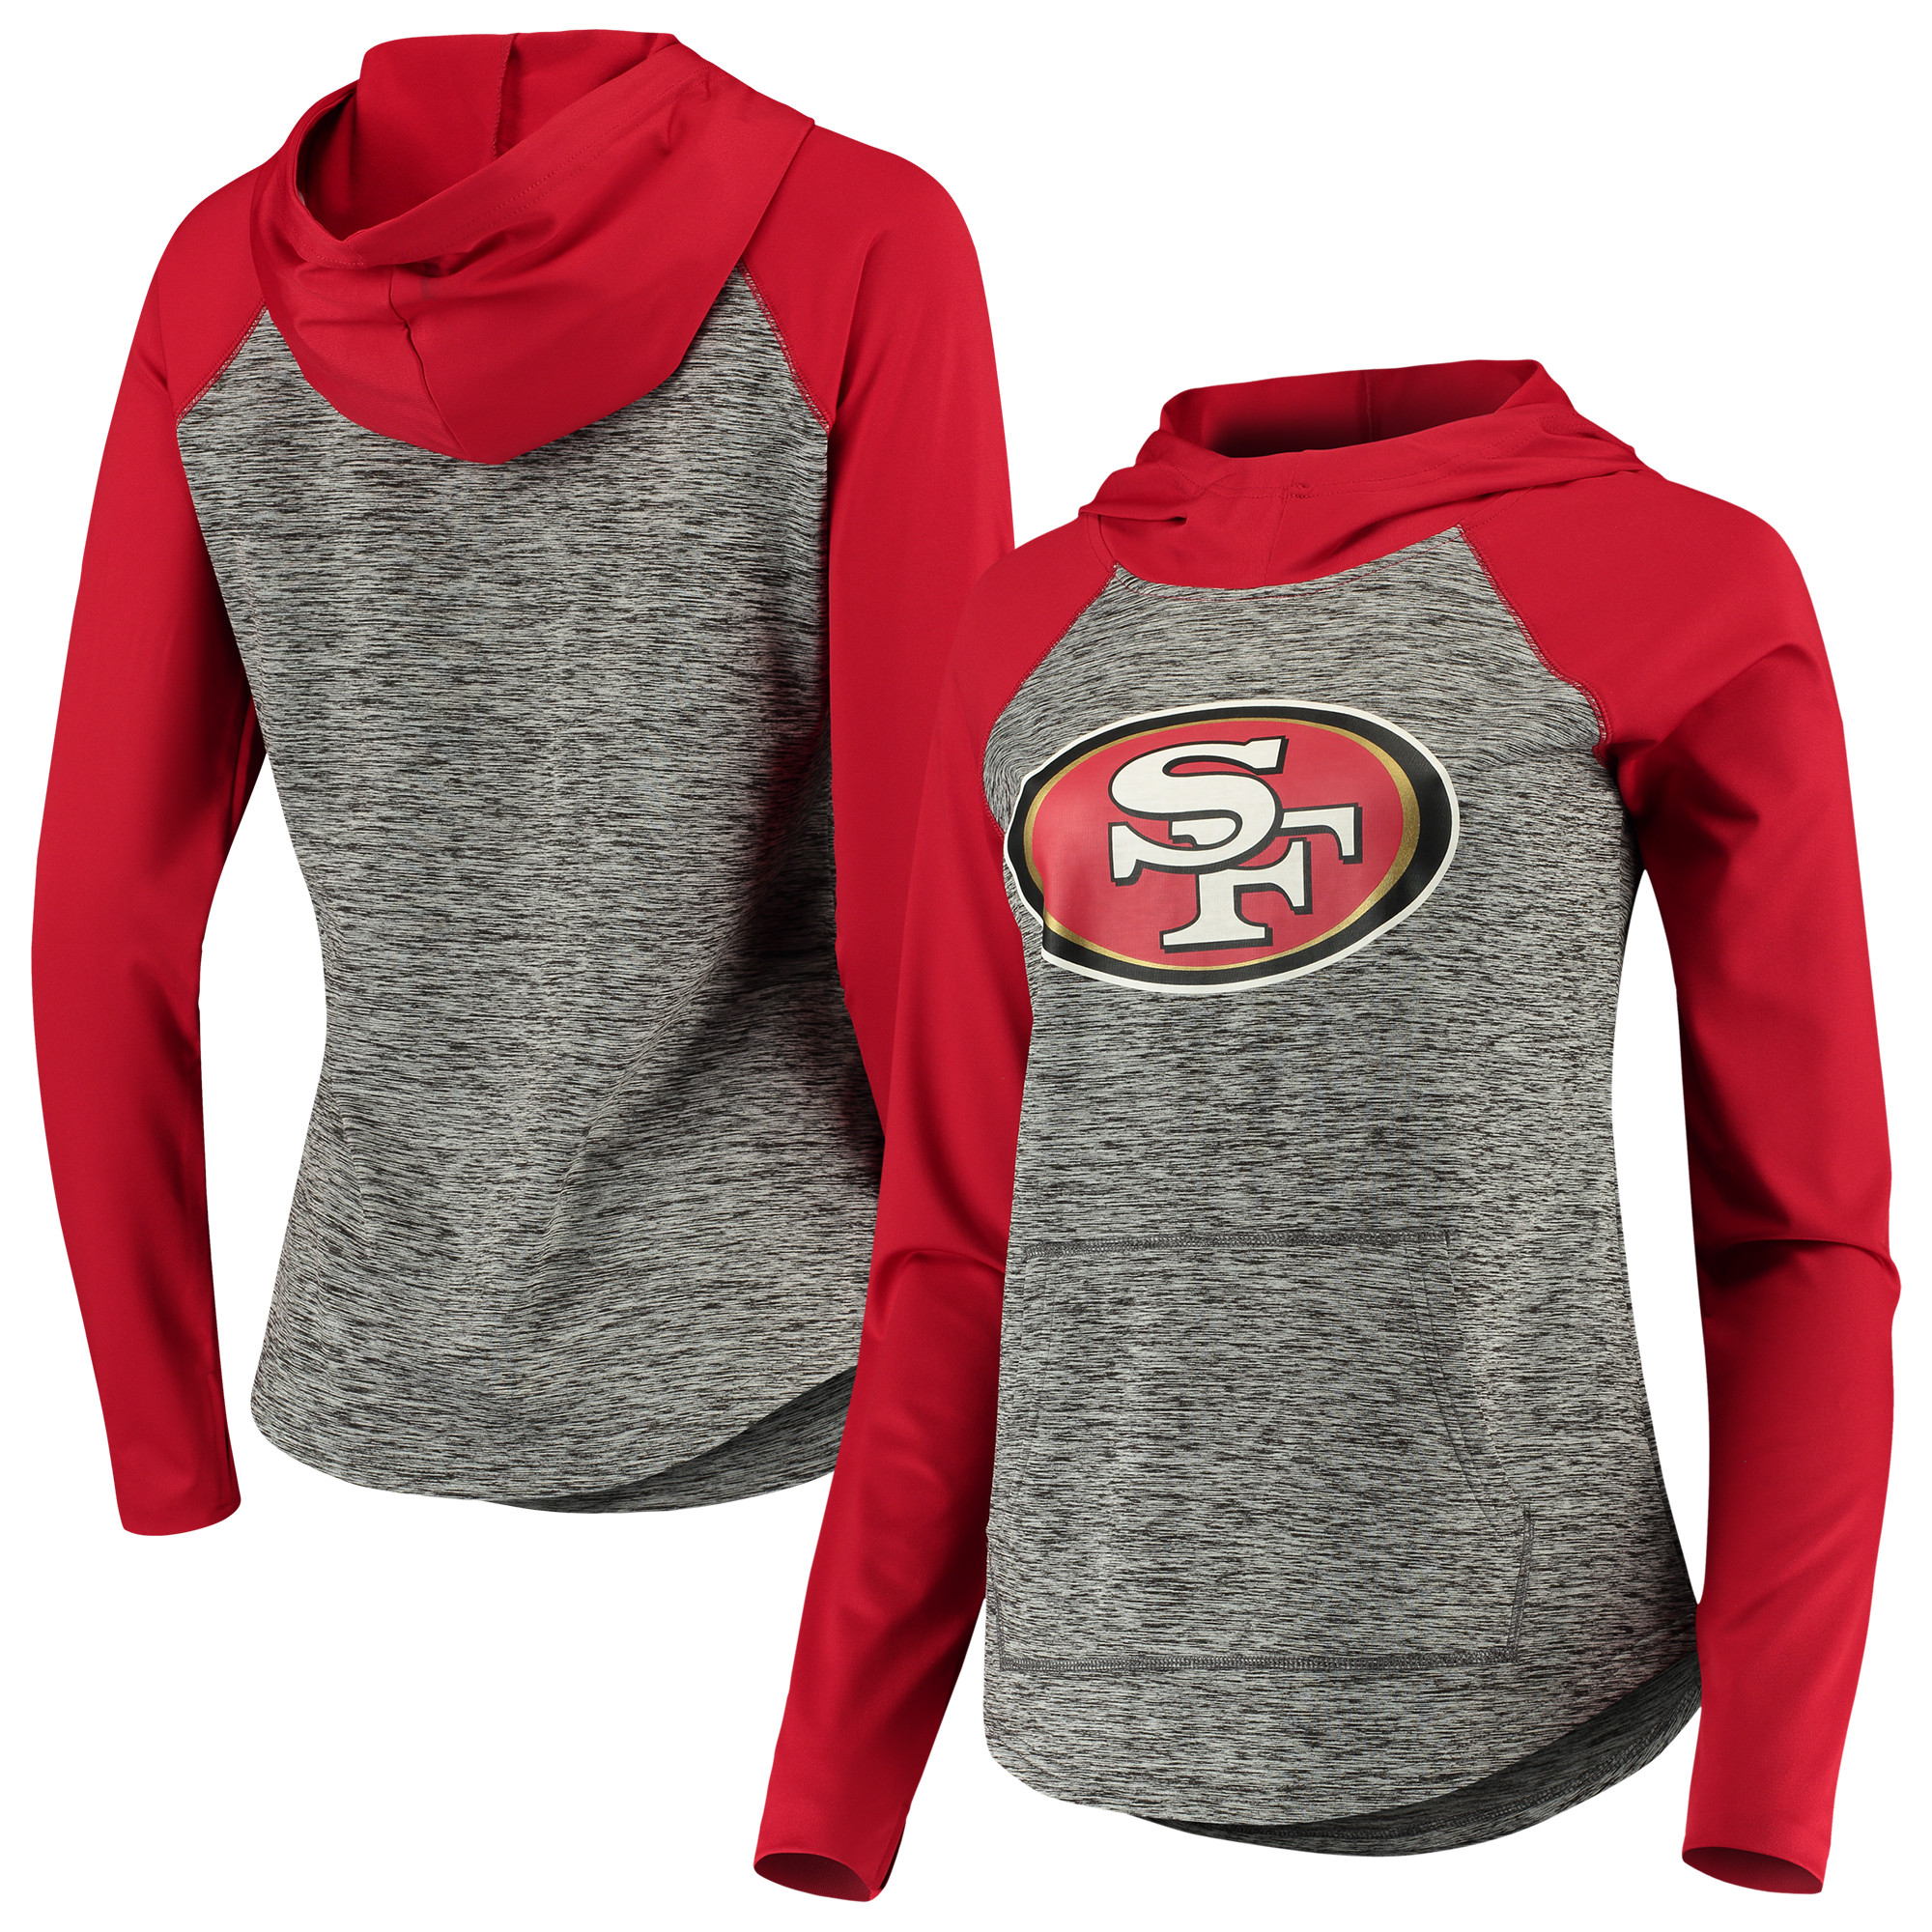 San Francisco 49ers G-III 4Her by Carl Banks Women's Championship Ring Pullover Hoodie - Heathered Gray/Scarlet